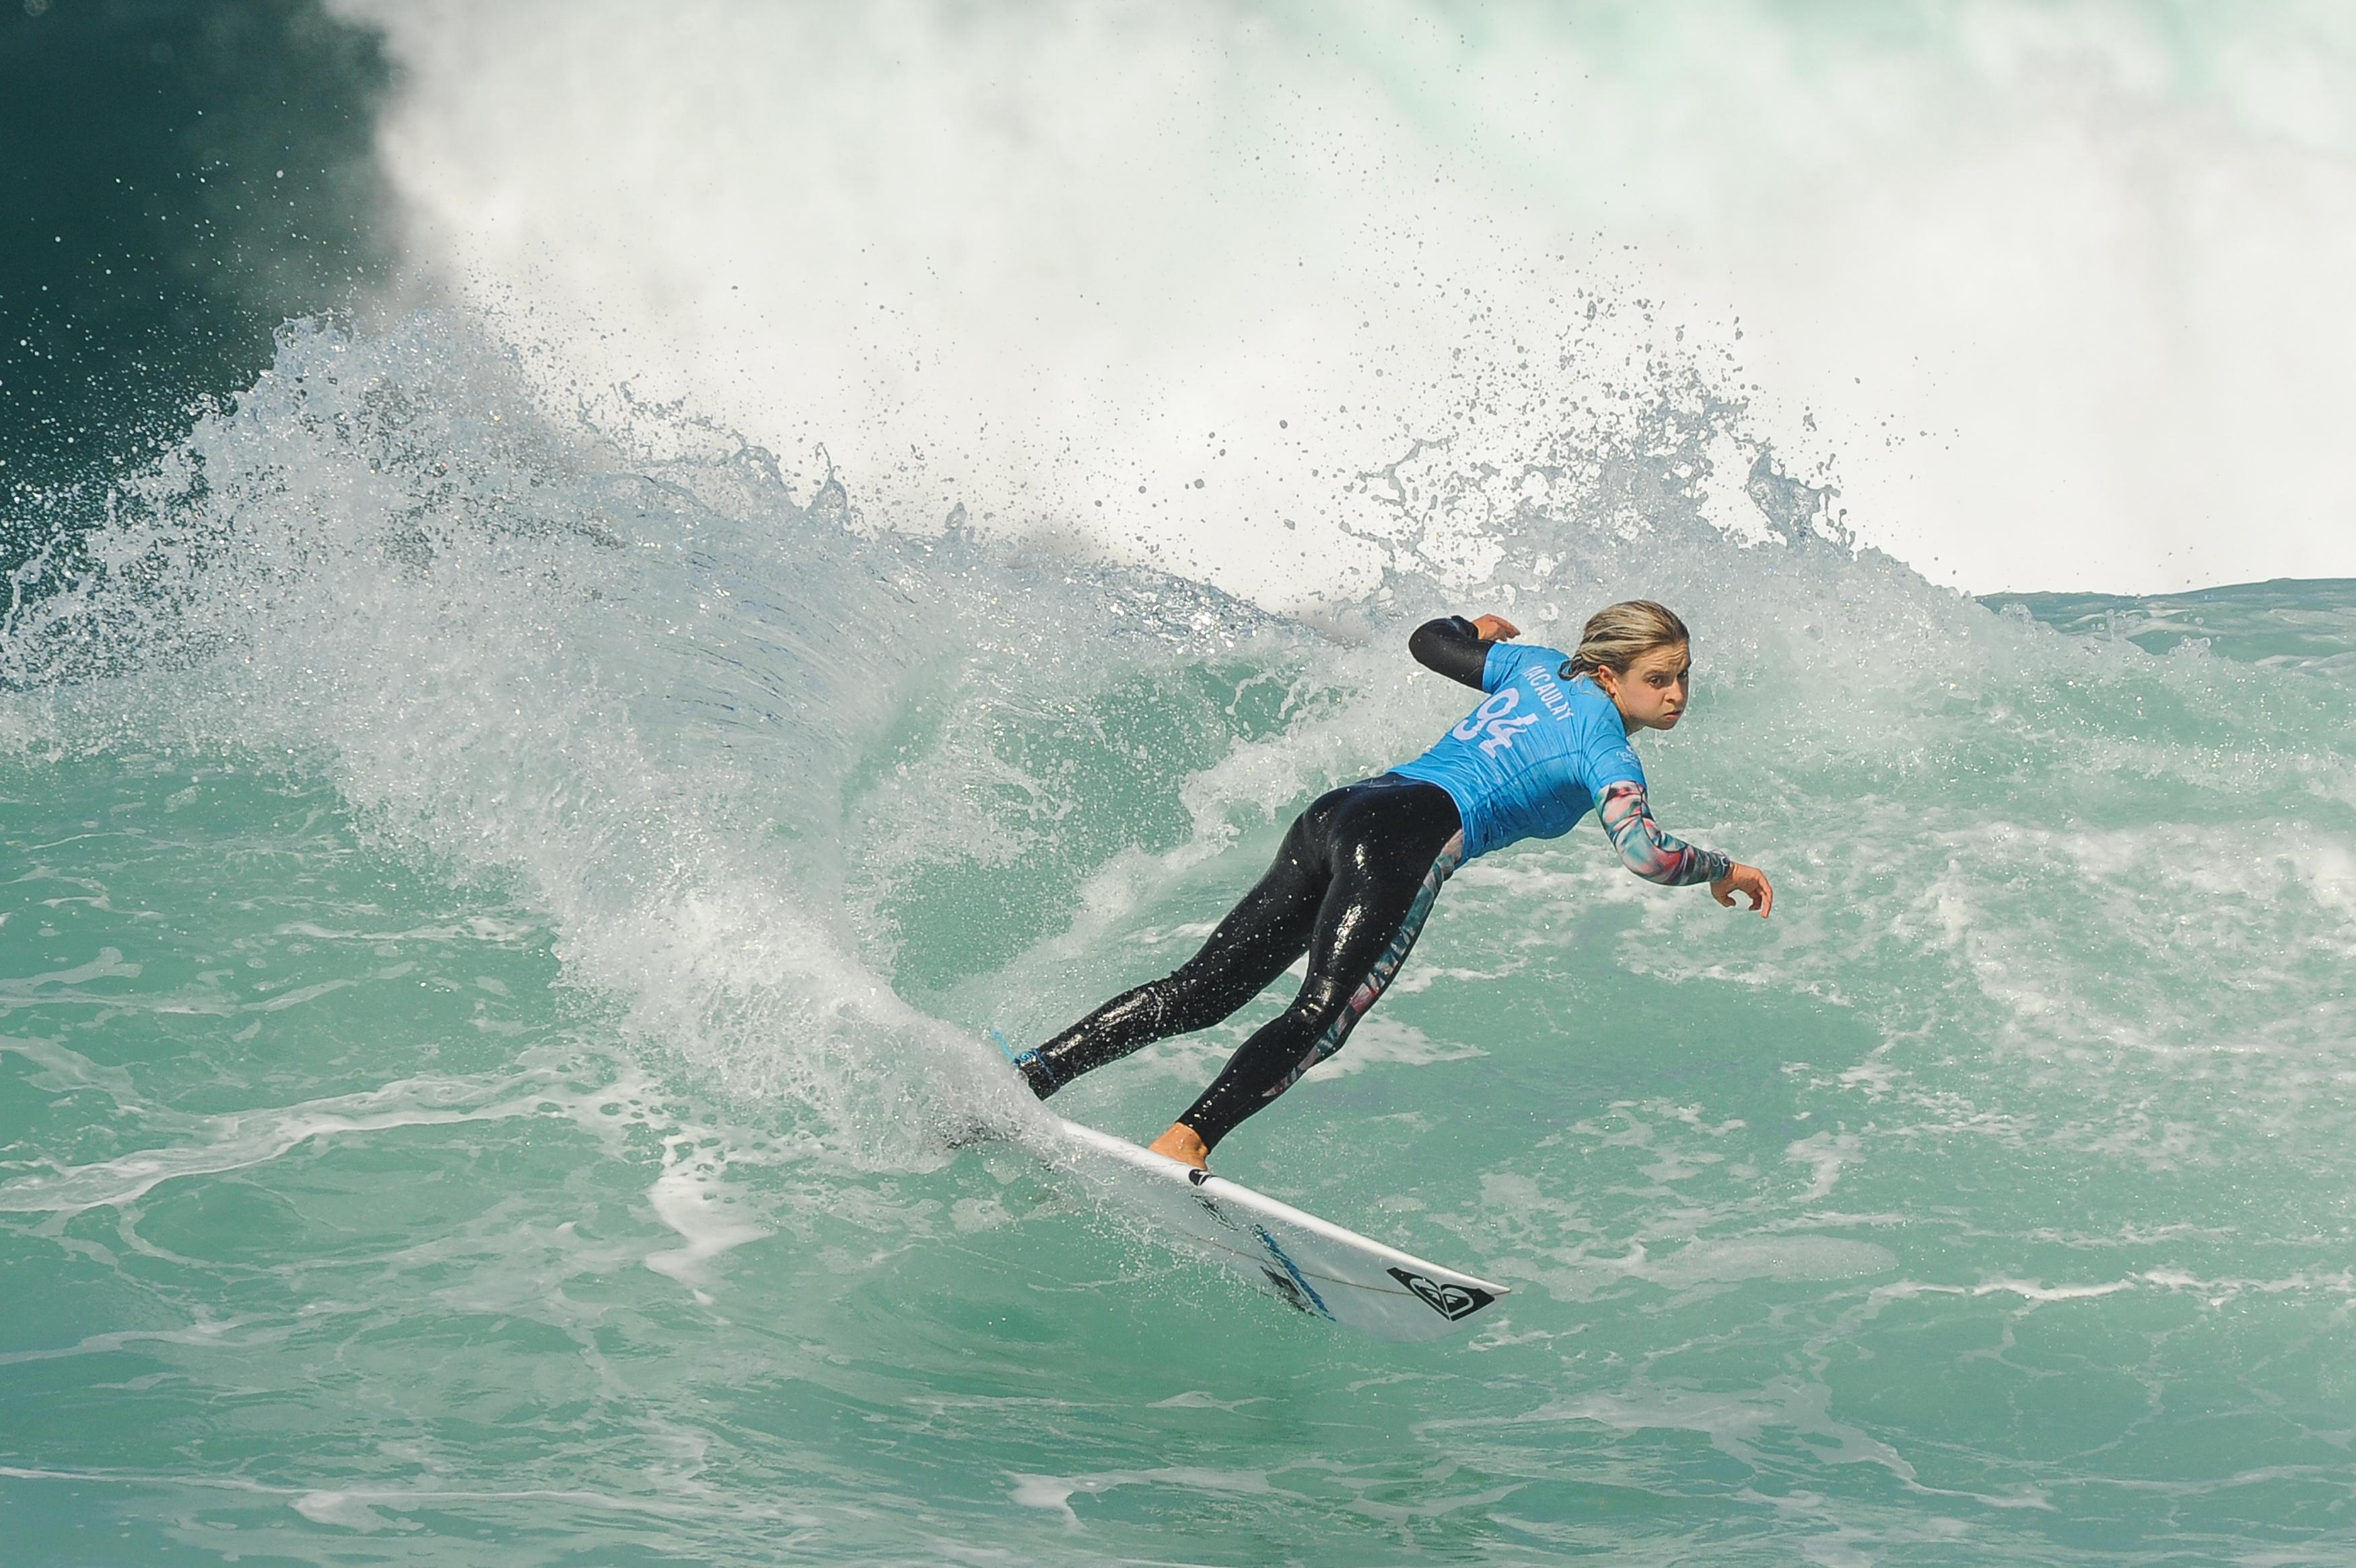 Some surfers opt for trousers when riding the waves